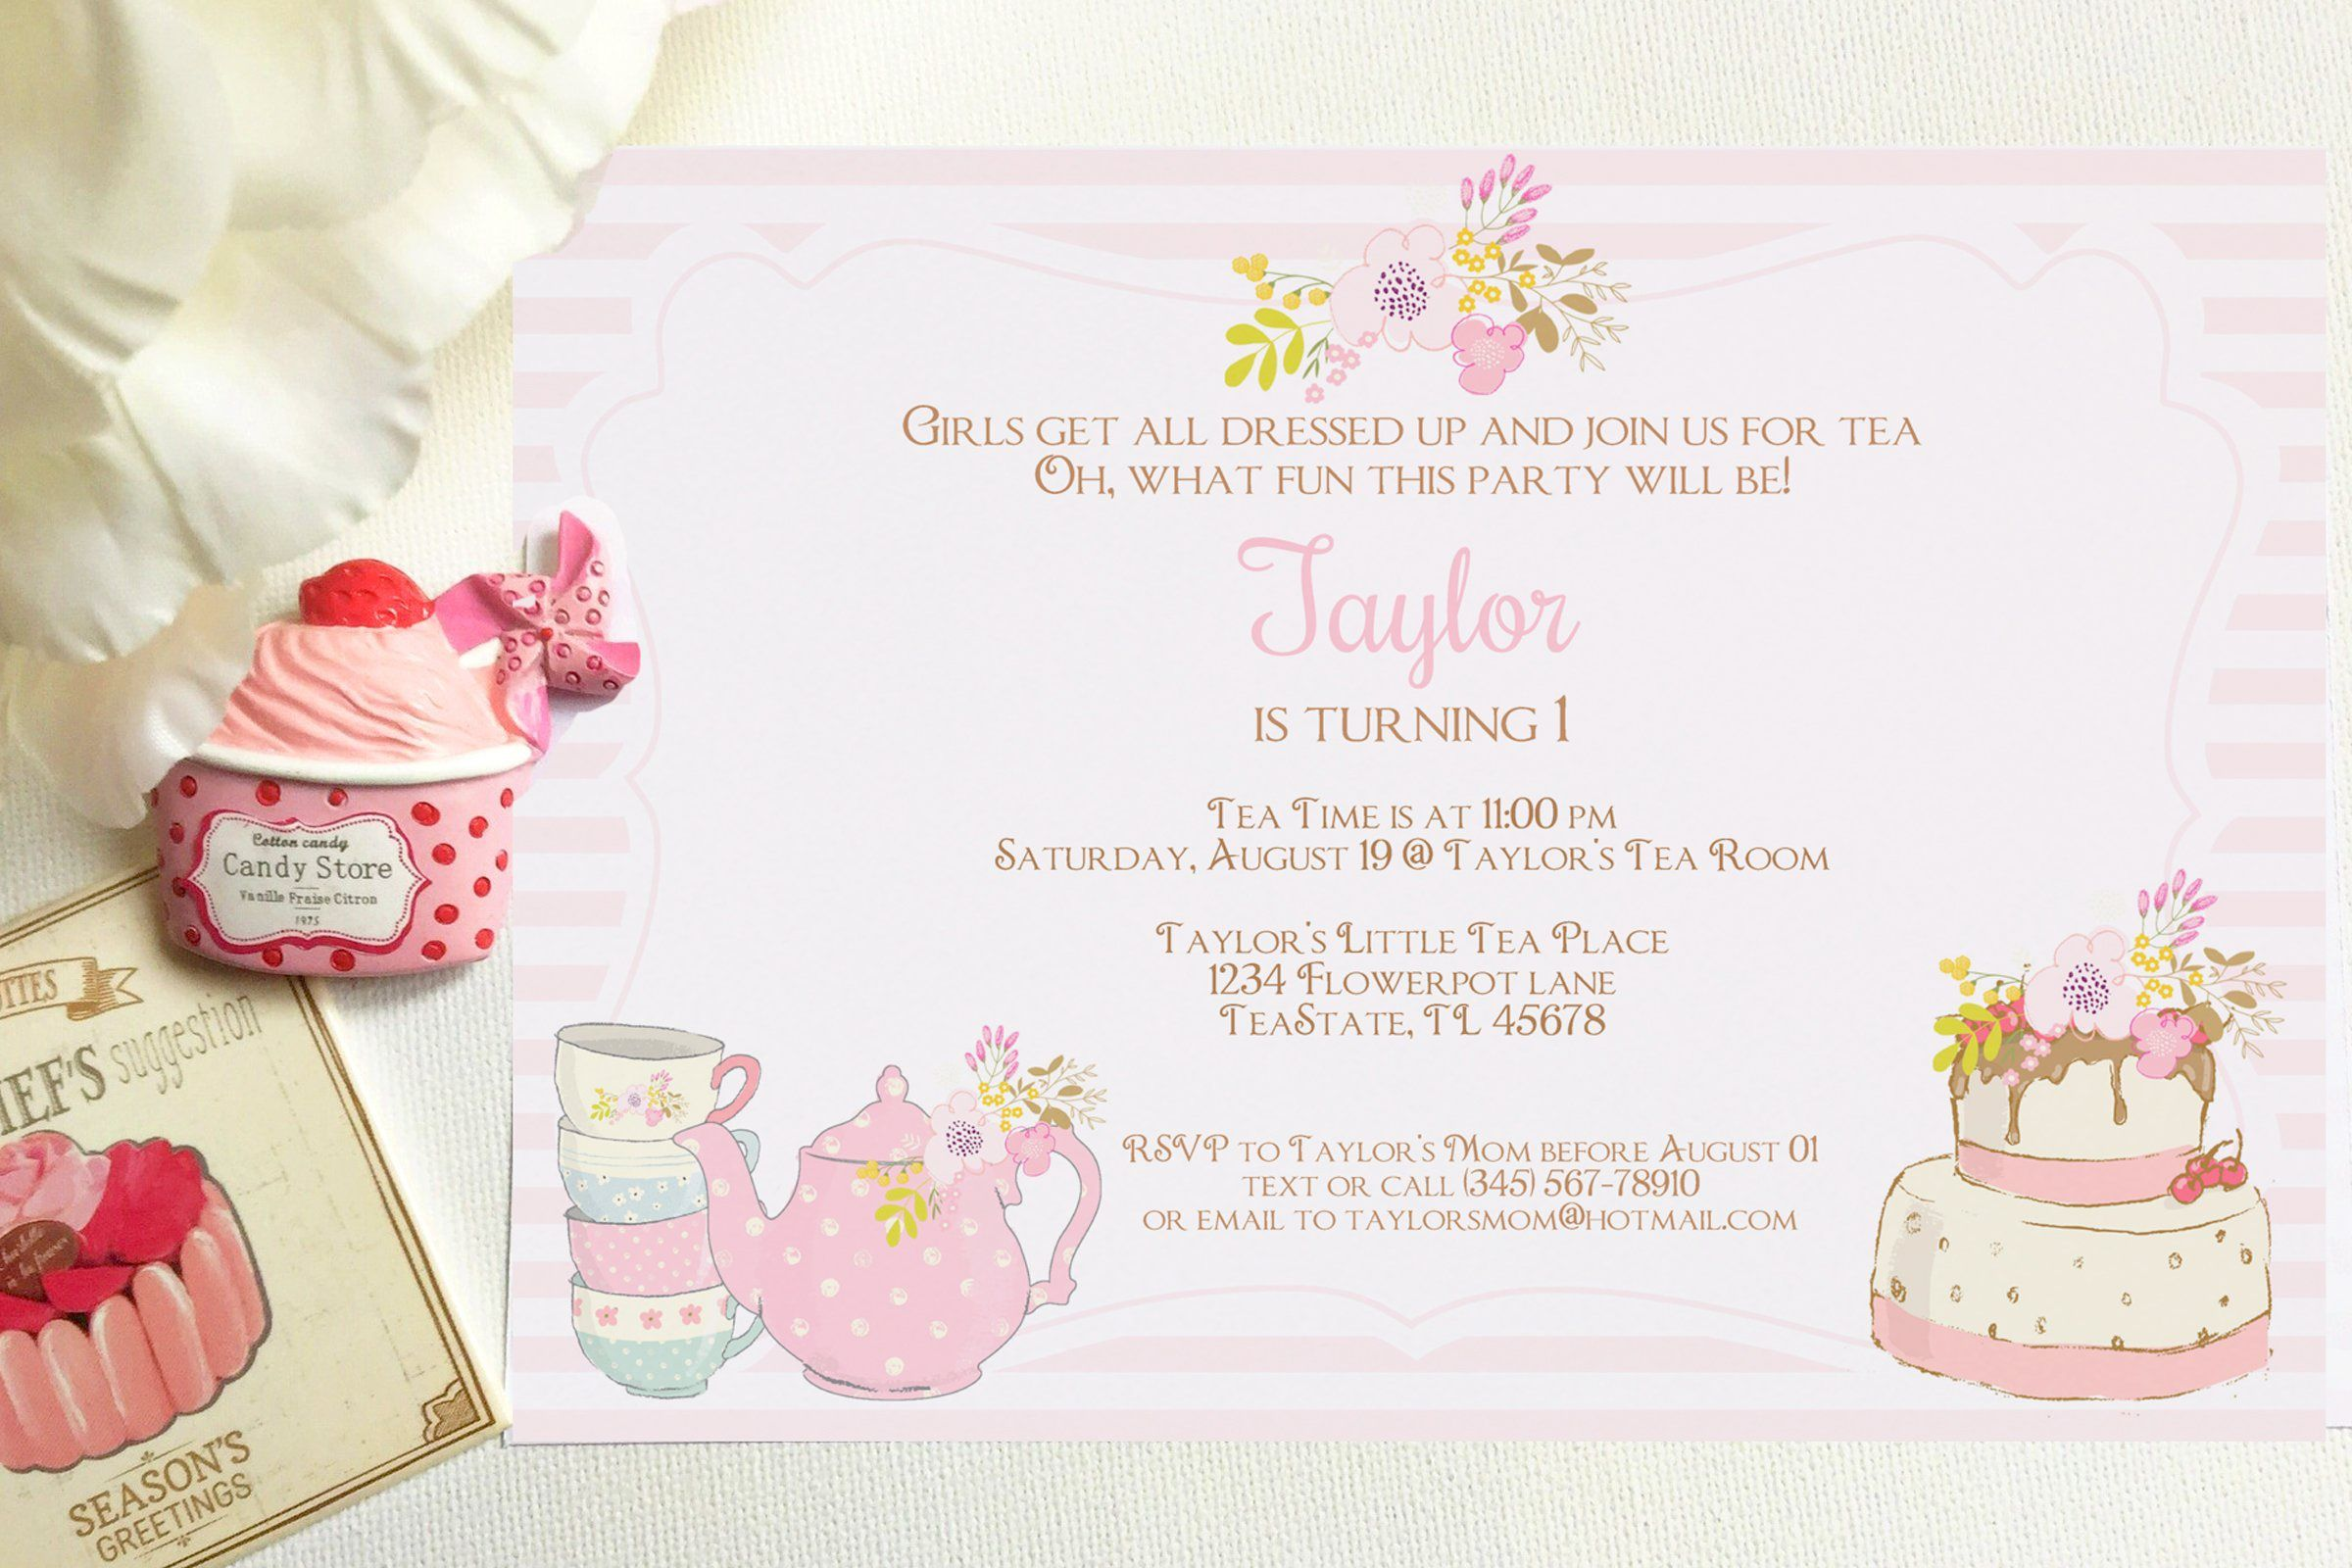 008 Outstanding Tea Party Invitation Template High Definition  Wording Vintage Free SampleFull